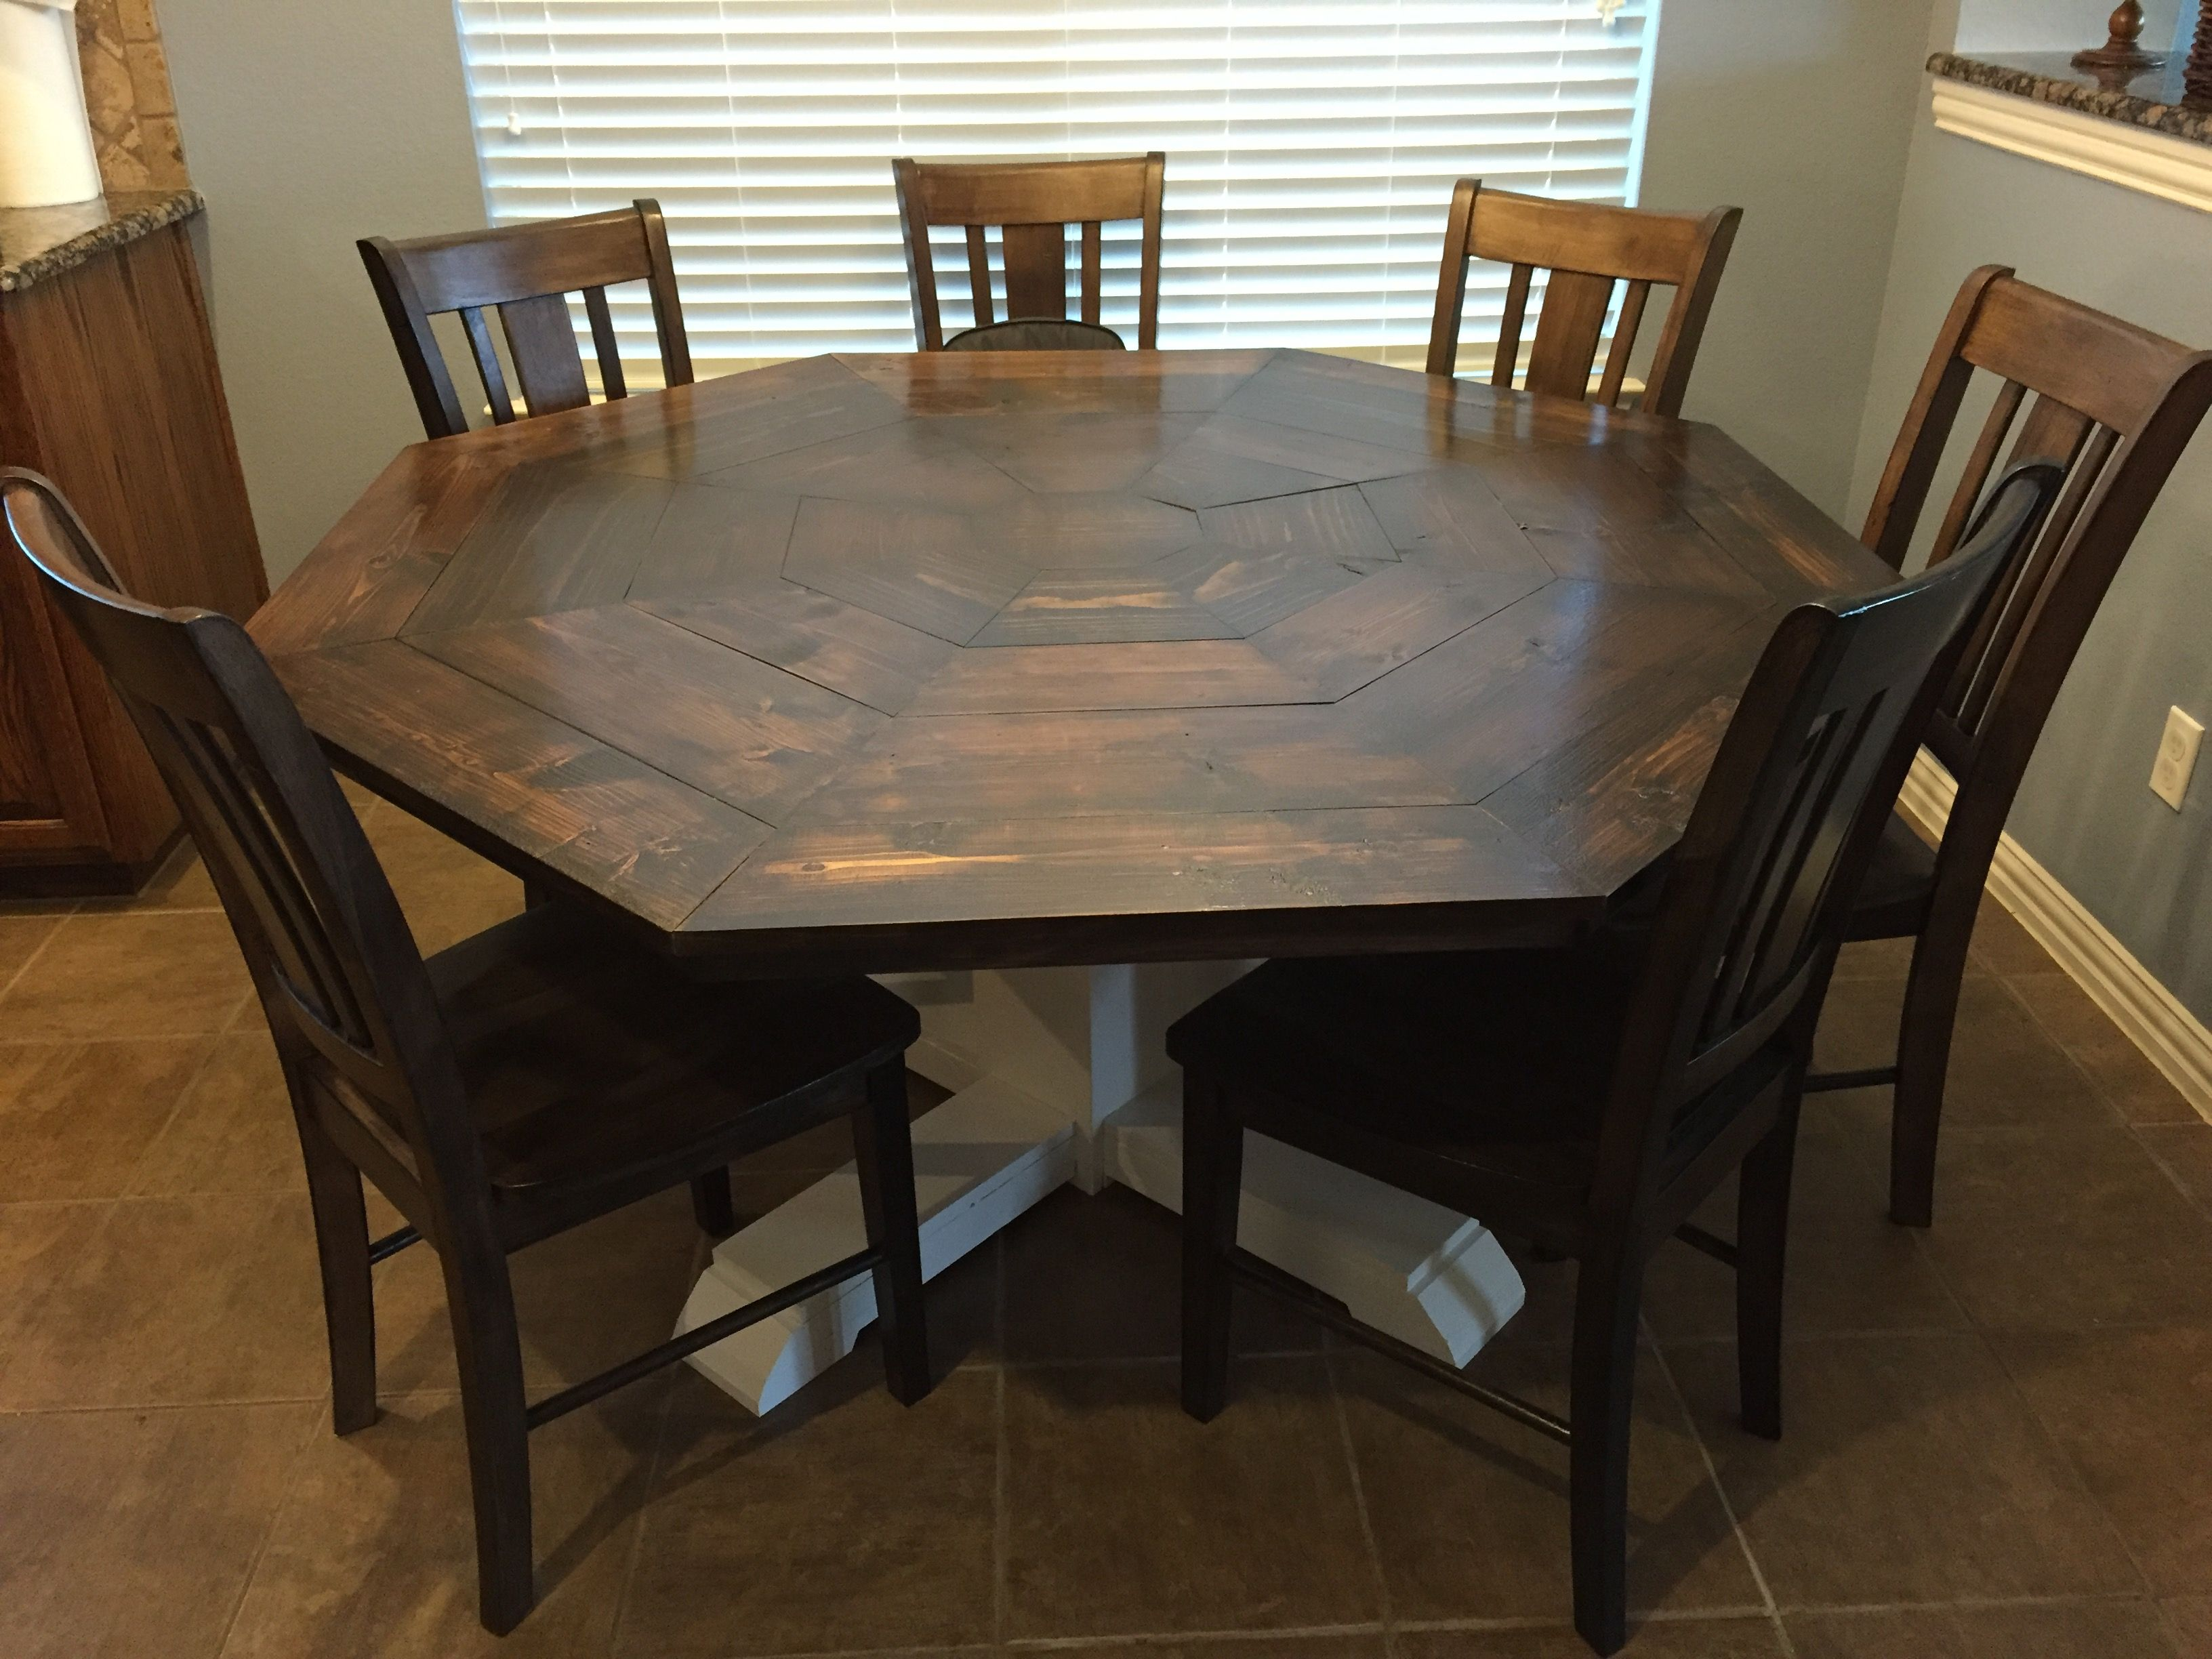 Ana White Octagon Dining Room Table Diy Projects Octagon